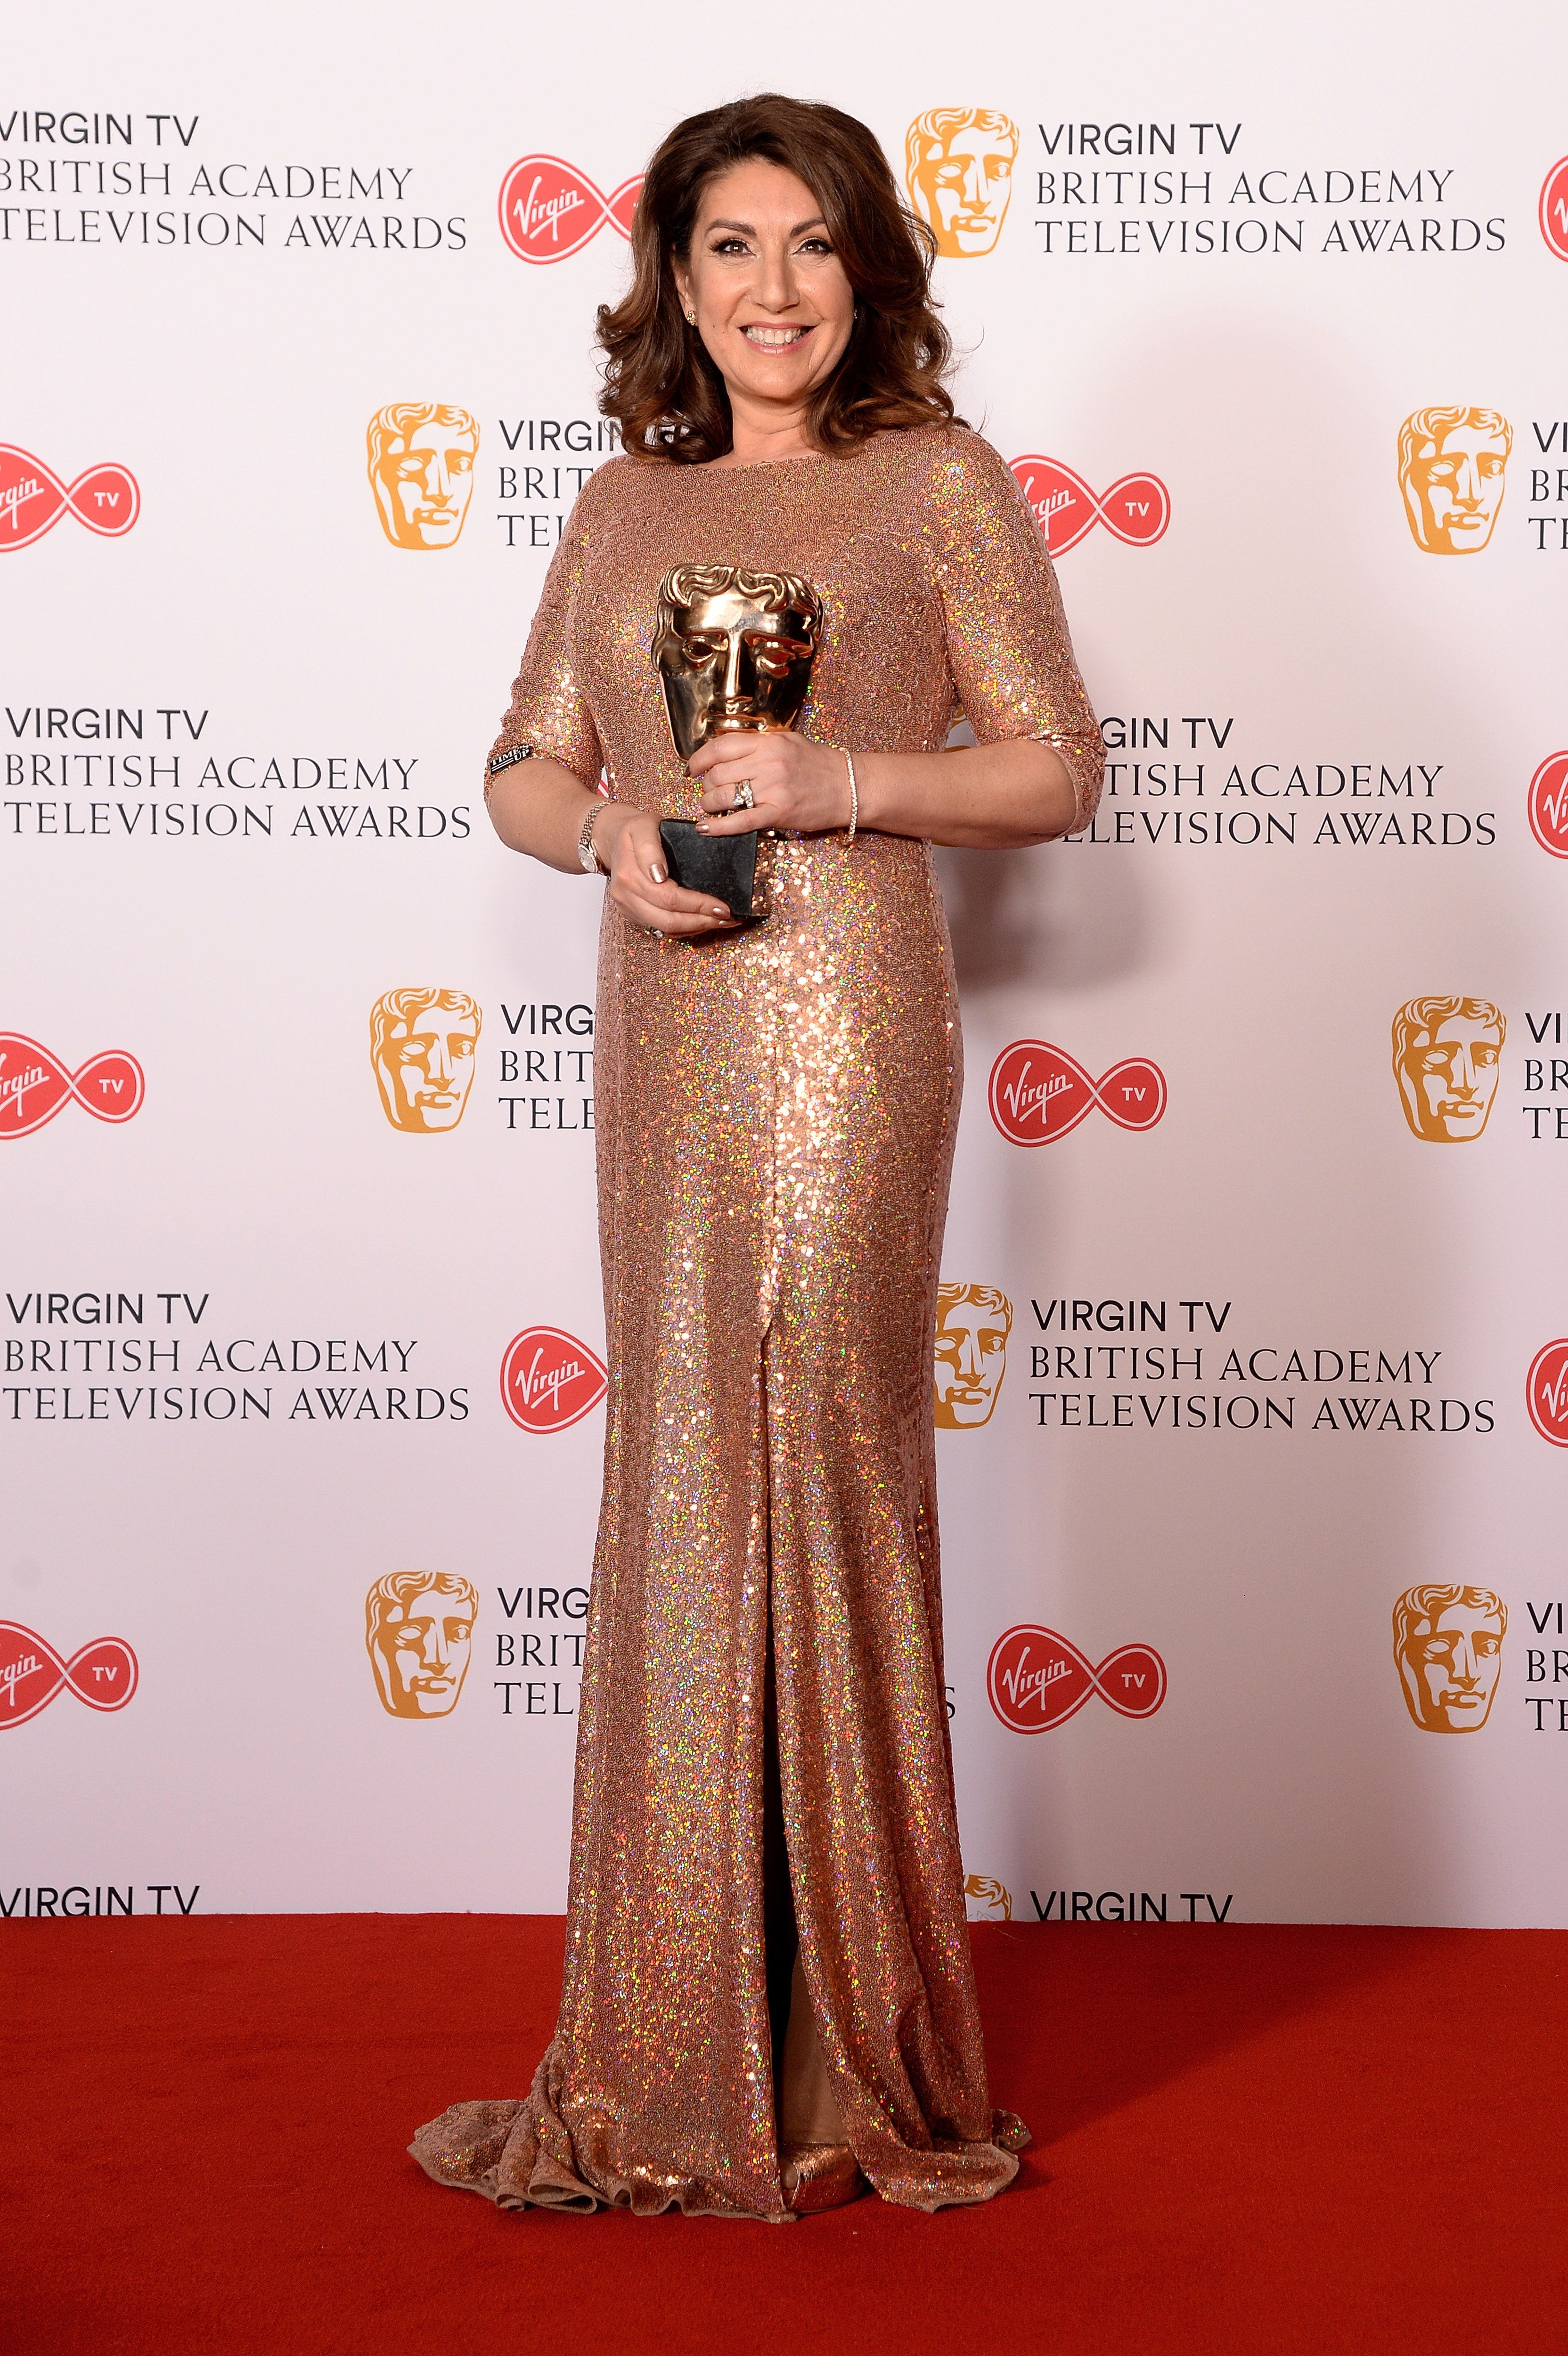 Jane McDonald Talks Us Through Her Exciting Night At The TV Baftas